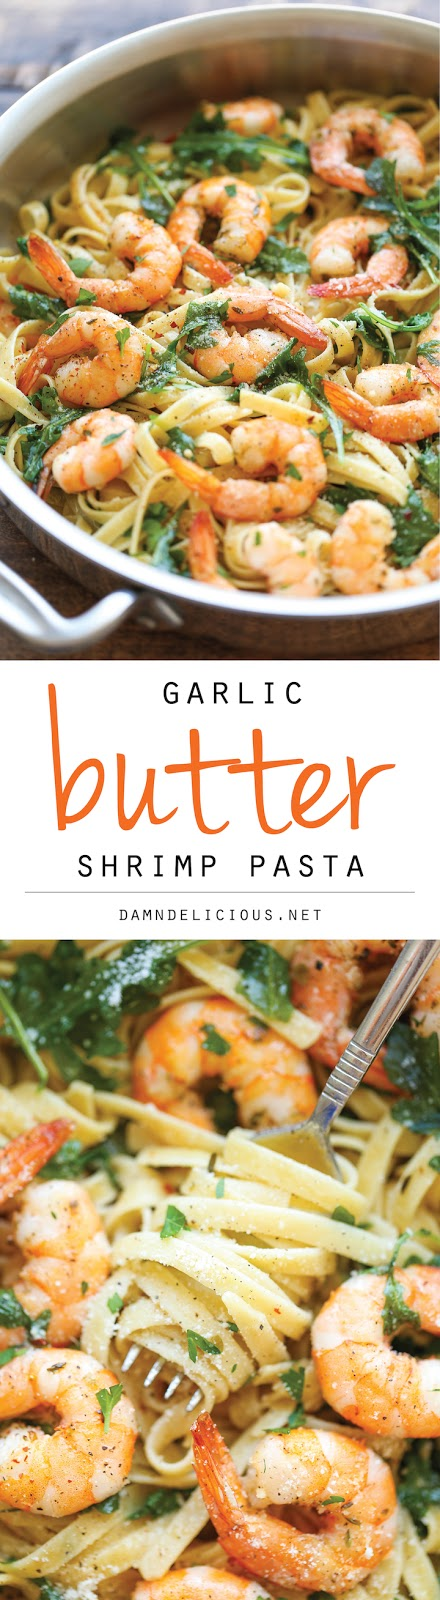 THE BEST GARLIC BUTTER SHRIMP PASTA